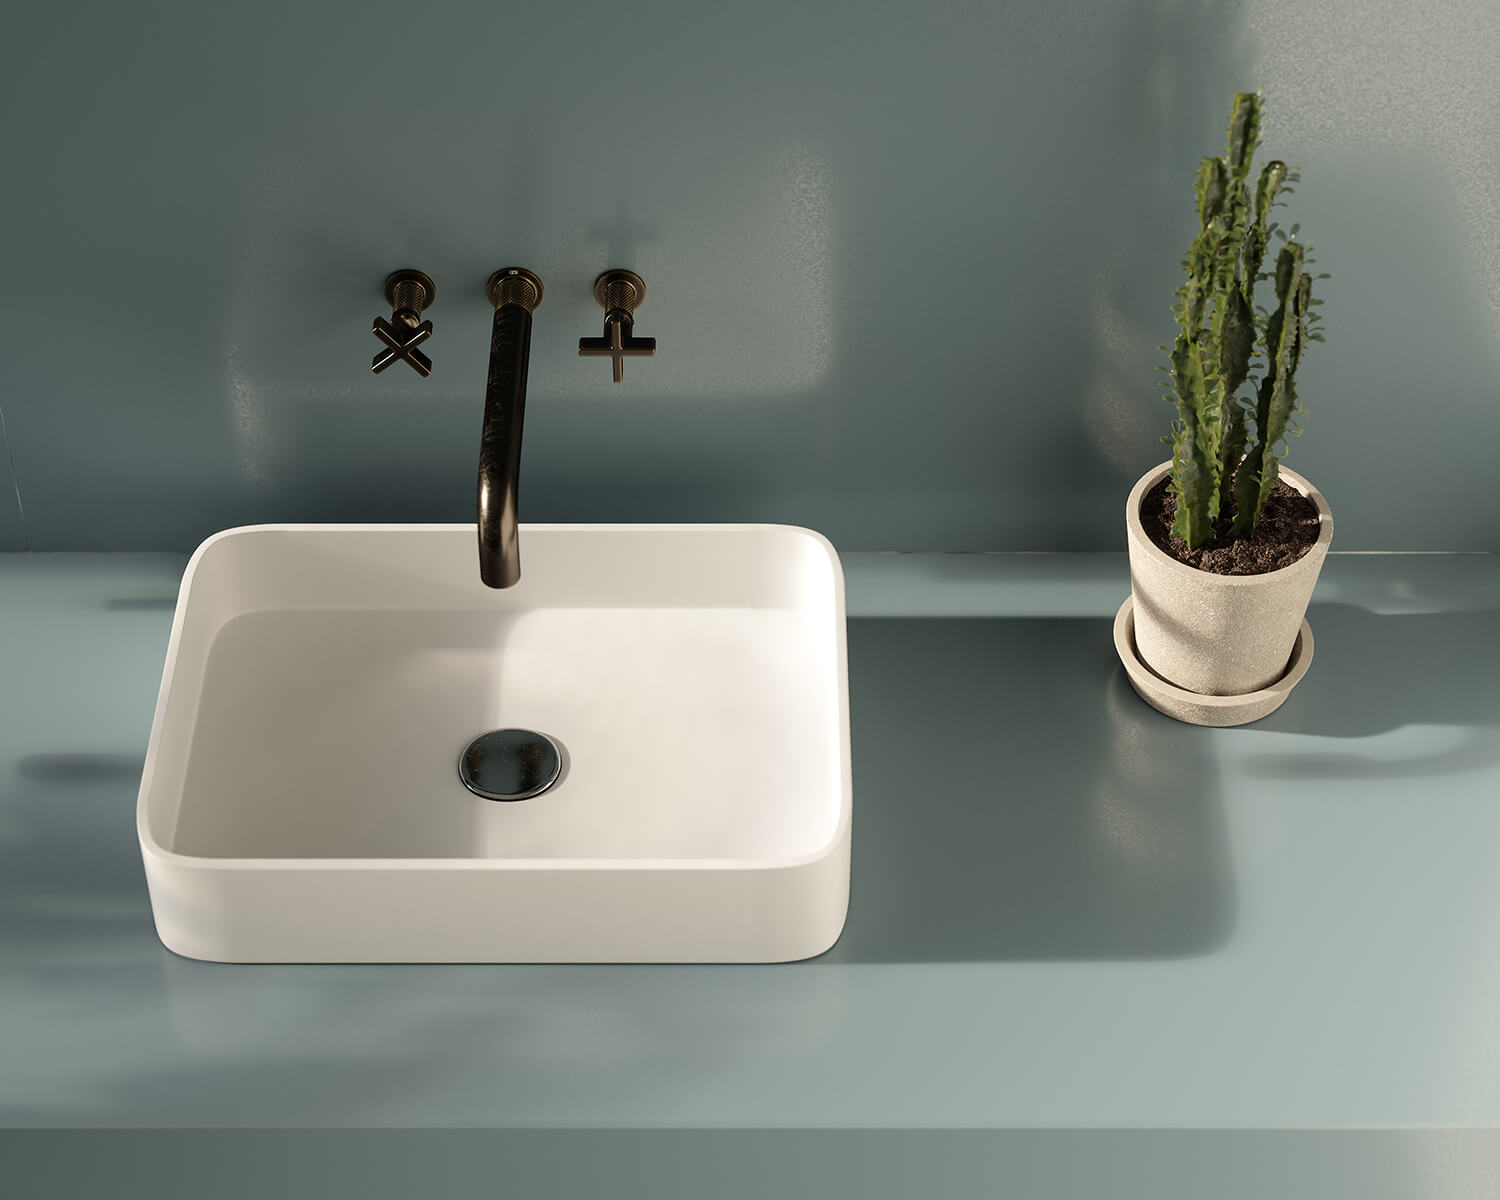 Blue Silestone countertop with white sink with black faucet and plant in a white pot